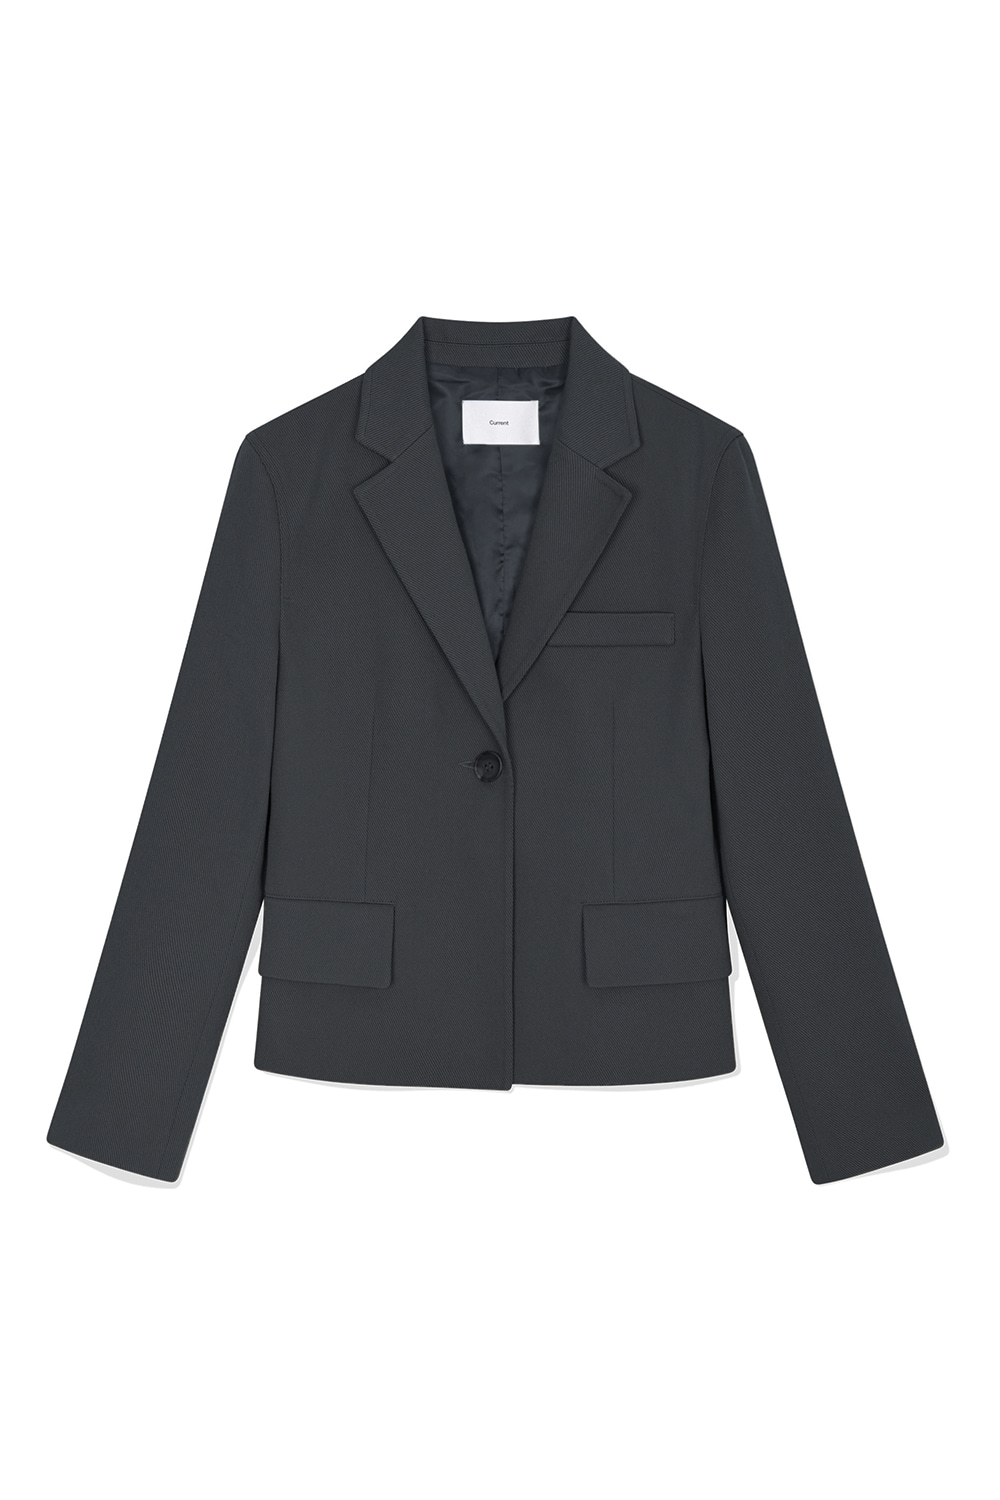 Line Silhouette Jacket Women JA [Charcoal Gray] -10%